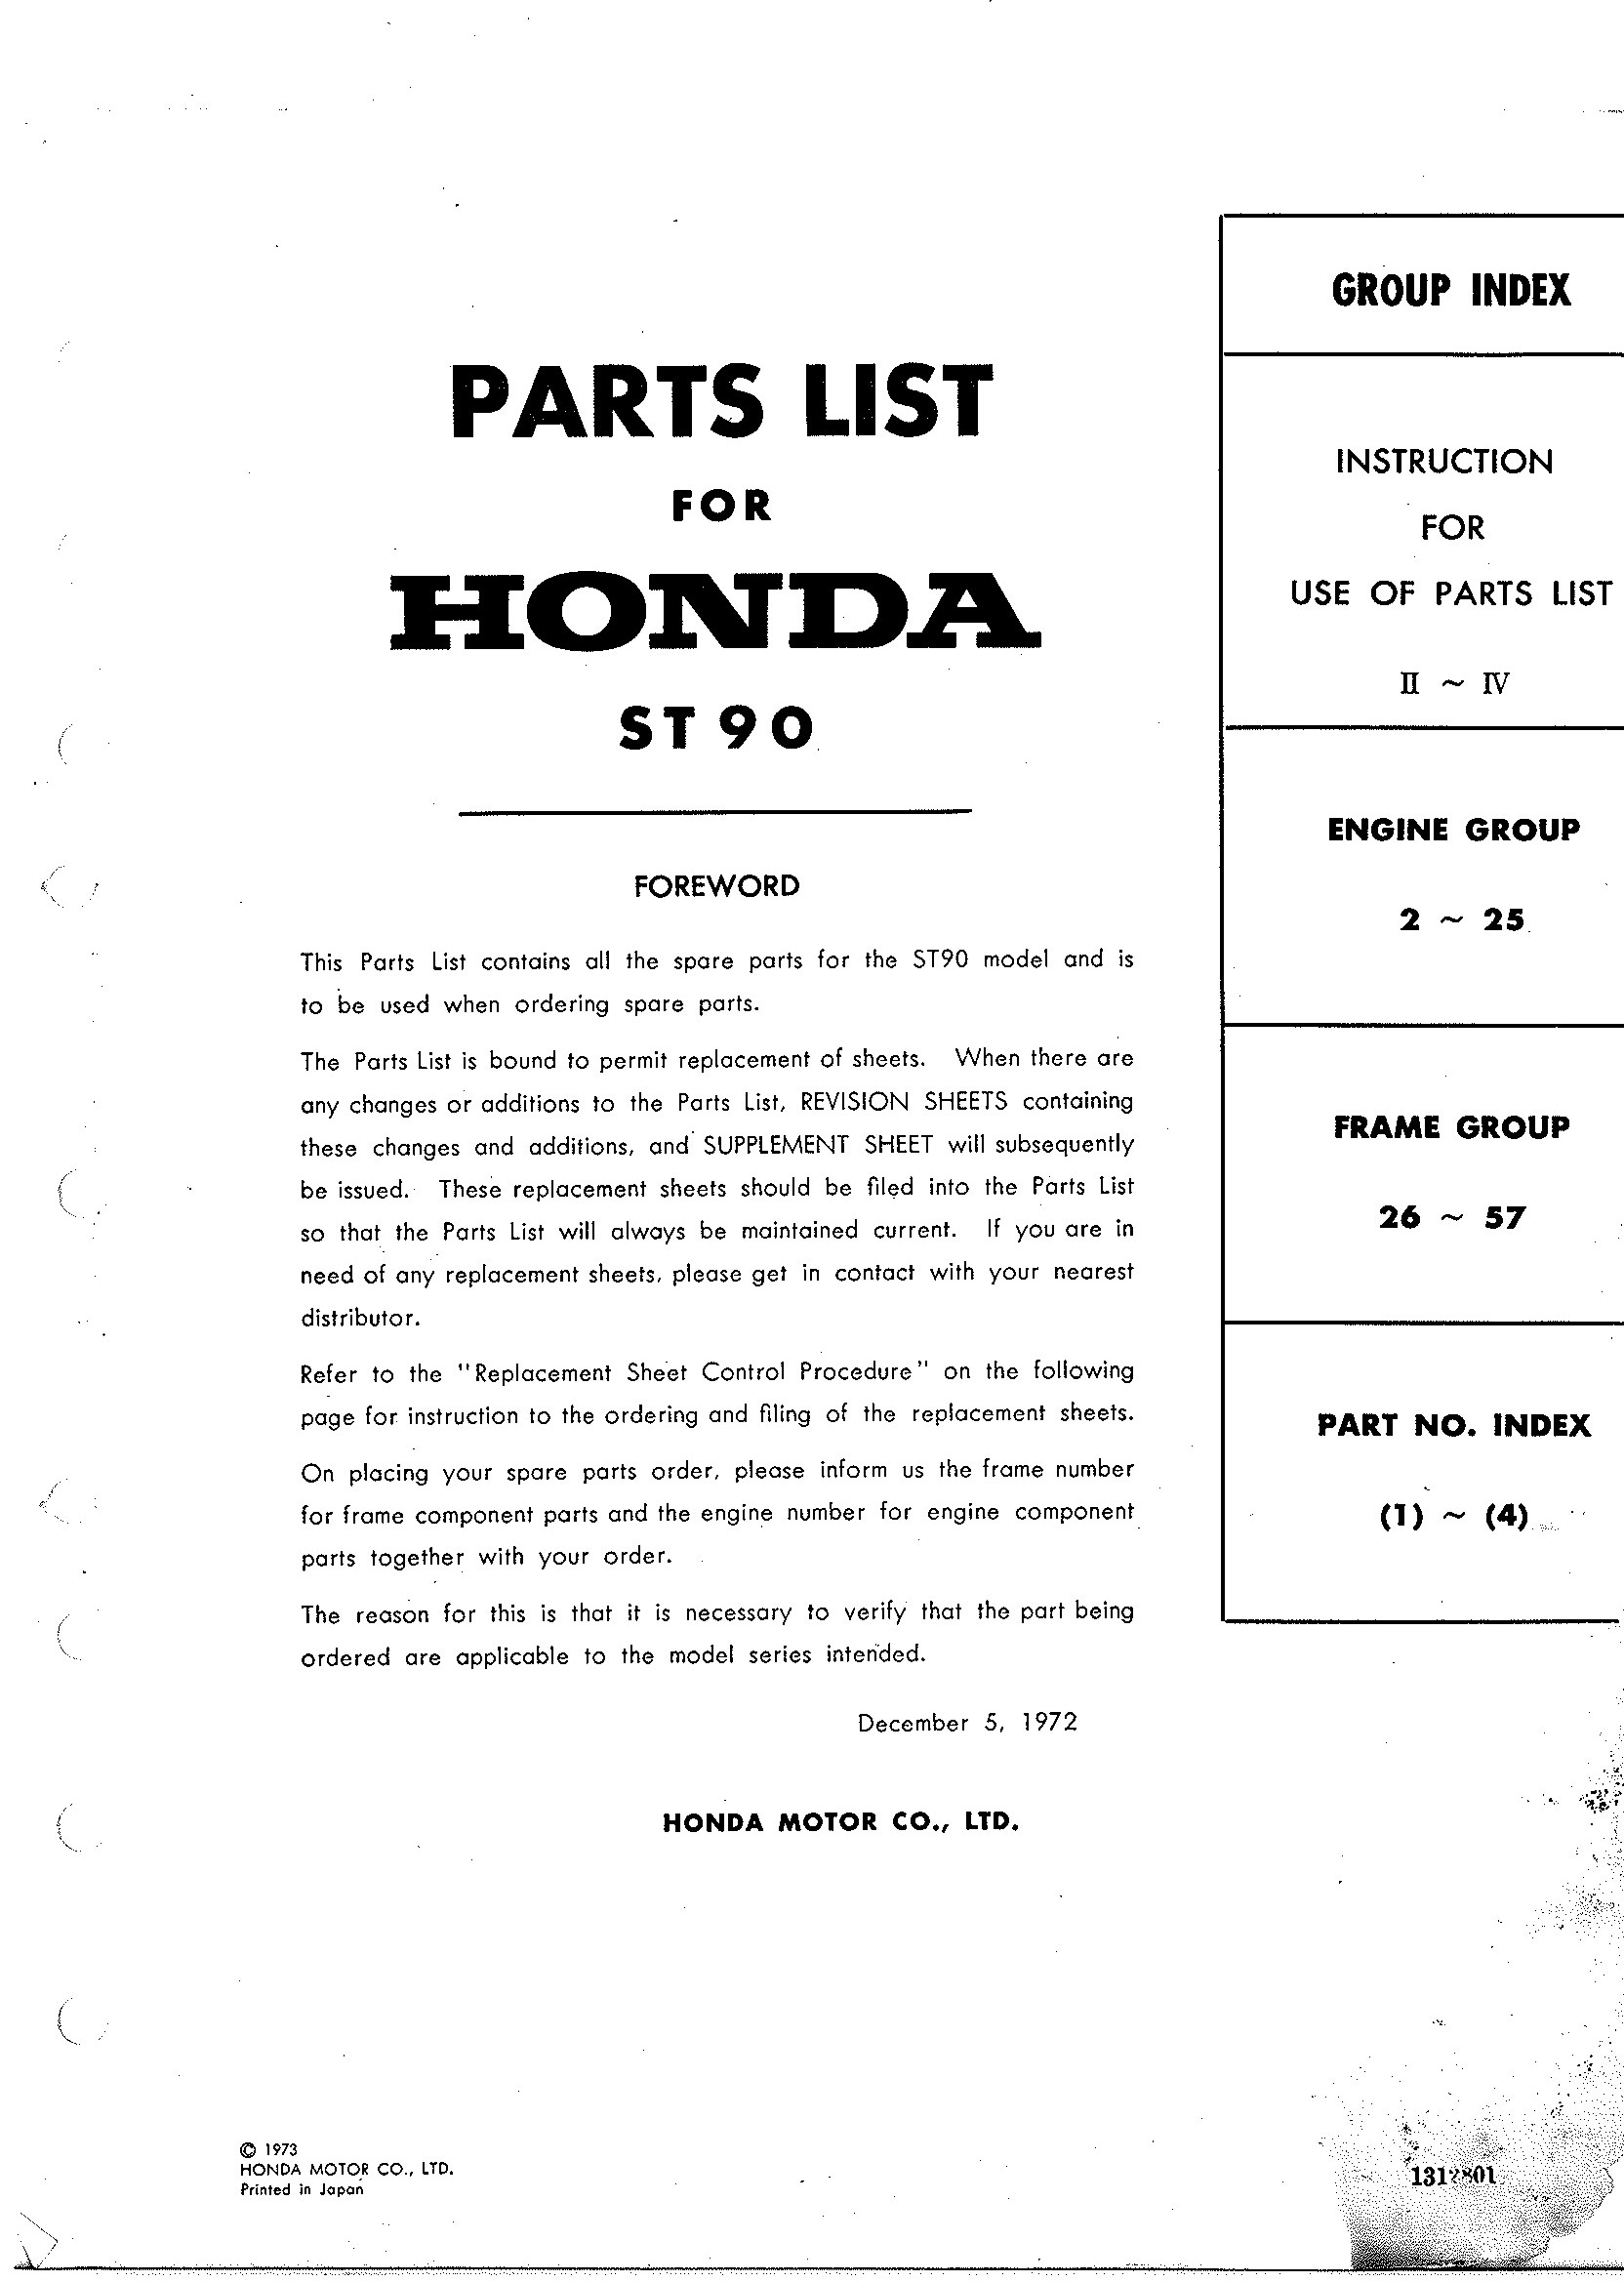 Parts List for Honda ST70G (1973)